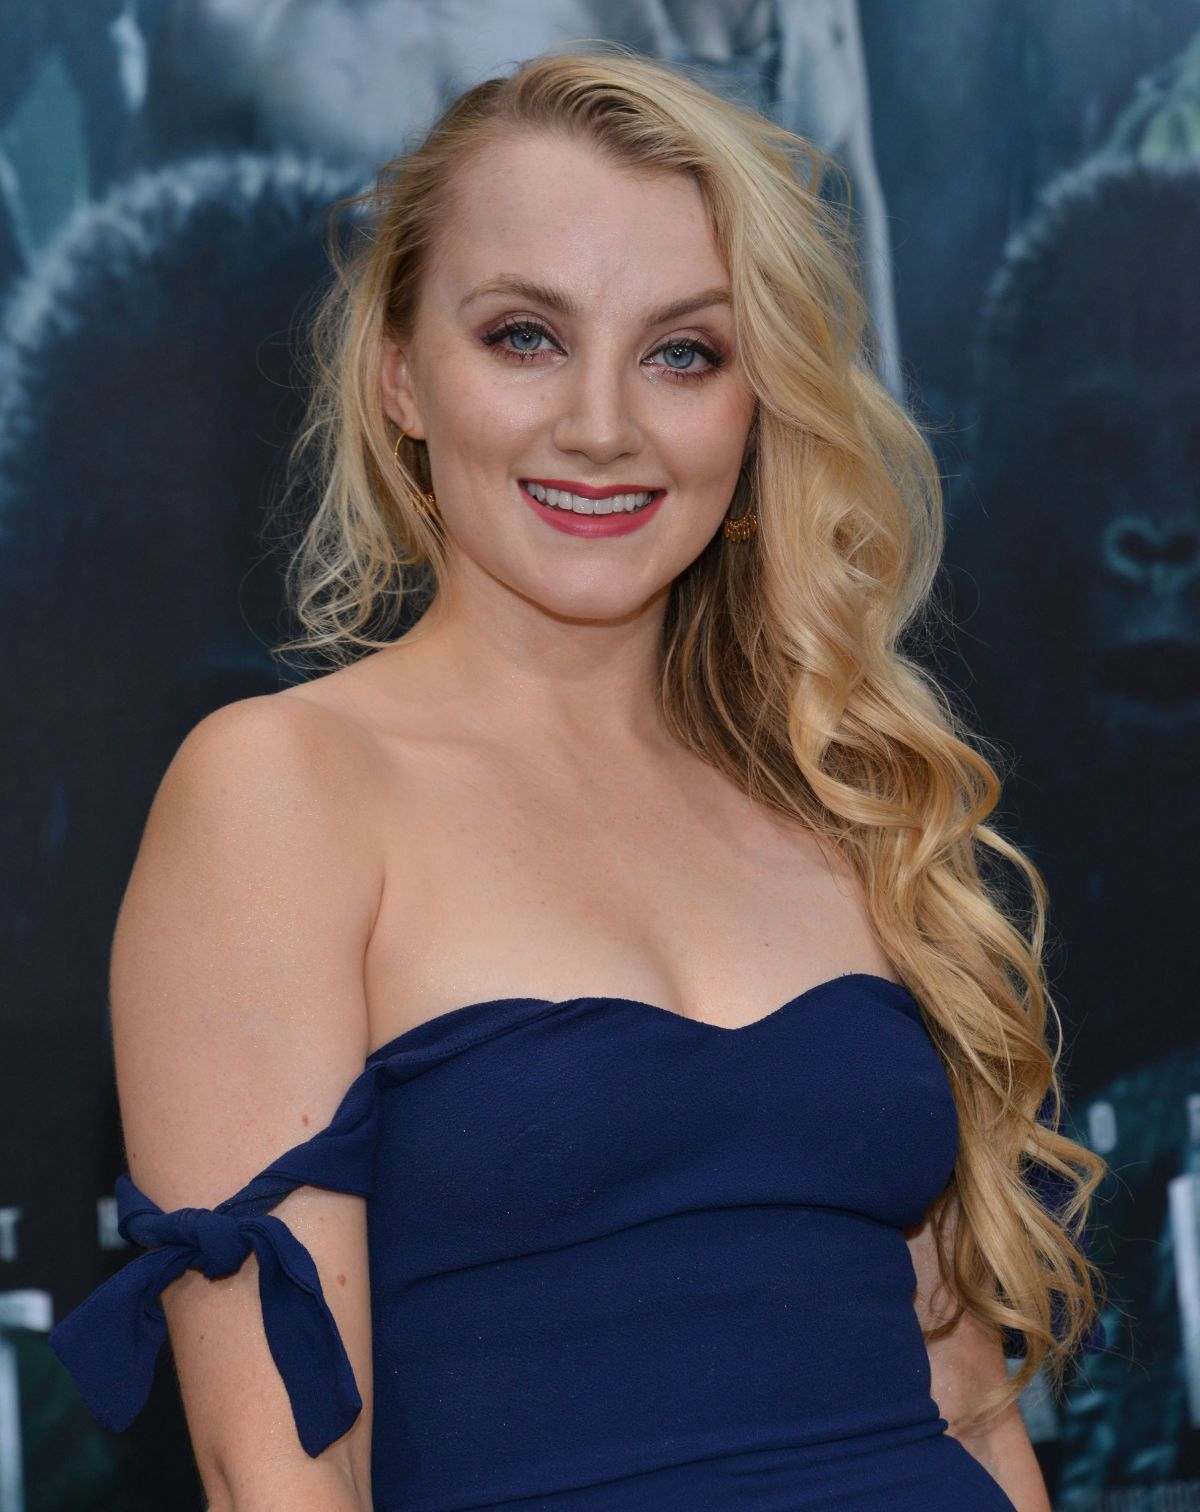 evanna-lynch-at-the-legend-of-tarzan-premiere-in-hollywood-06-27-2016_1